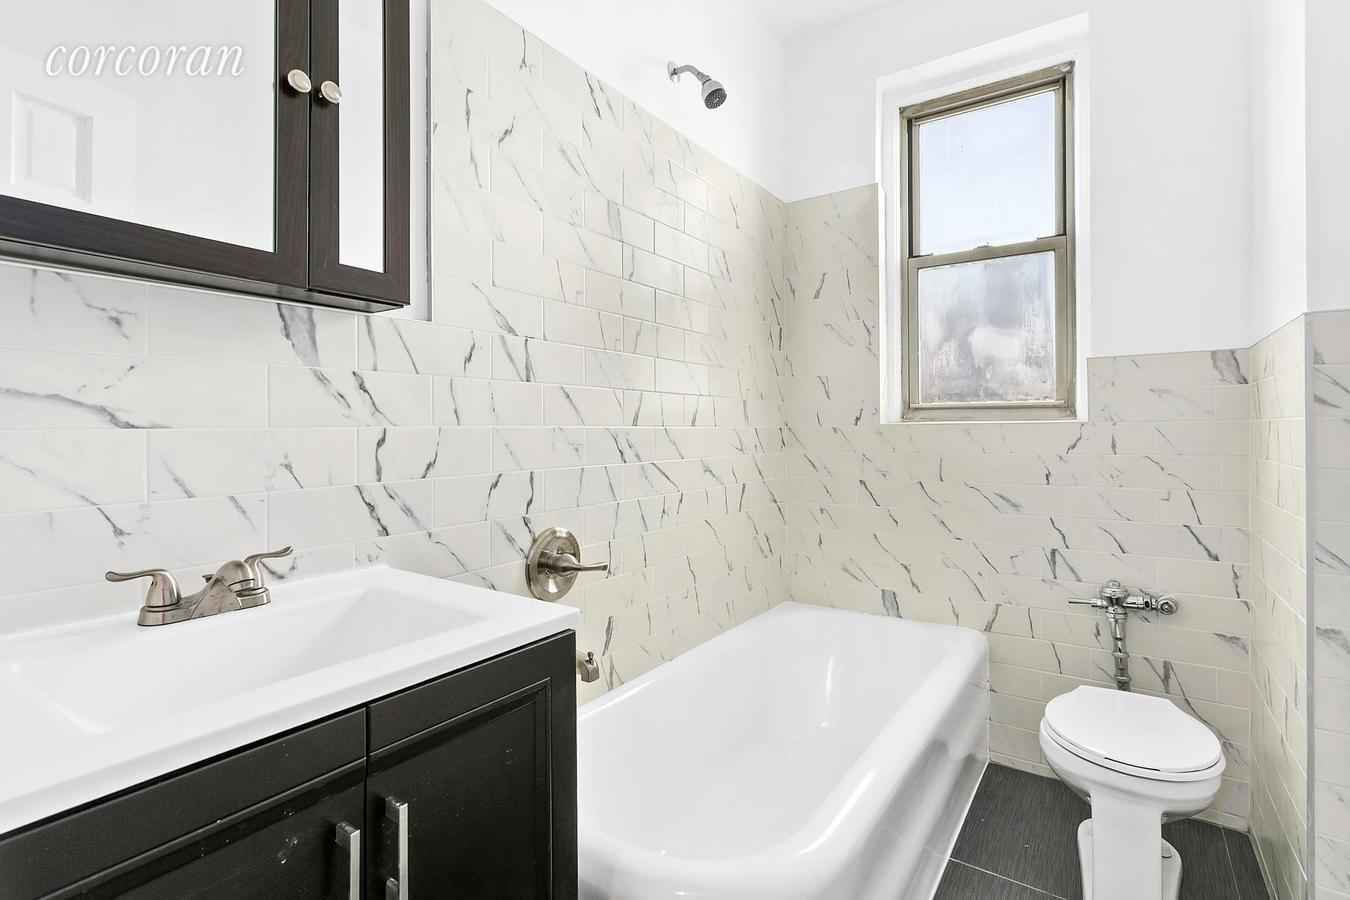 Apartment for sale at 59-11 Queens Boulevard, Apt 2A